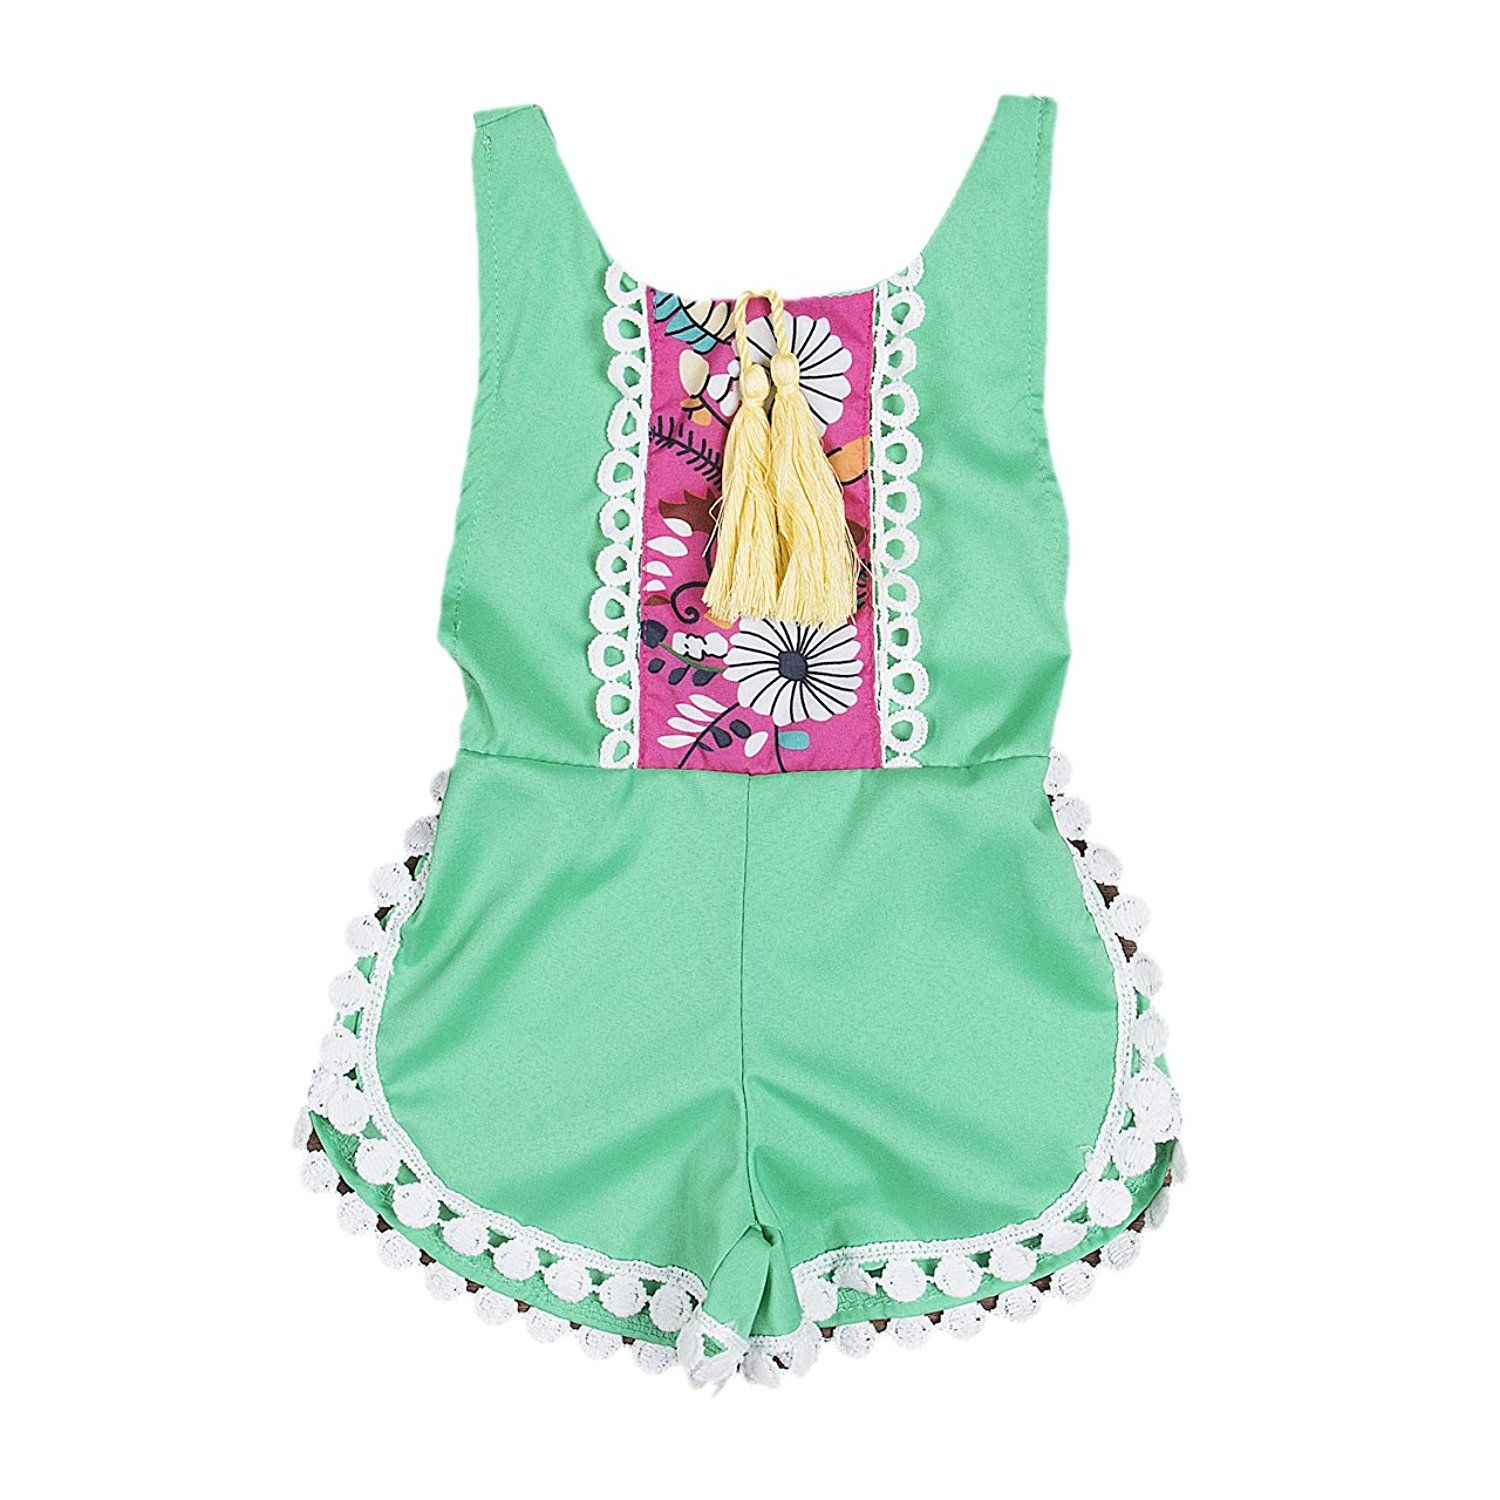 Baby Girls Romper Clothes Ethnic Style Tassels Backless Floral Jumpsuit Summer Outfits